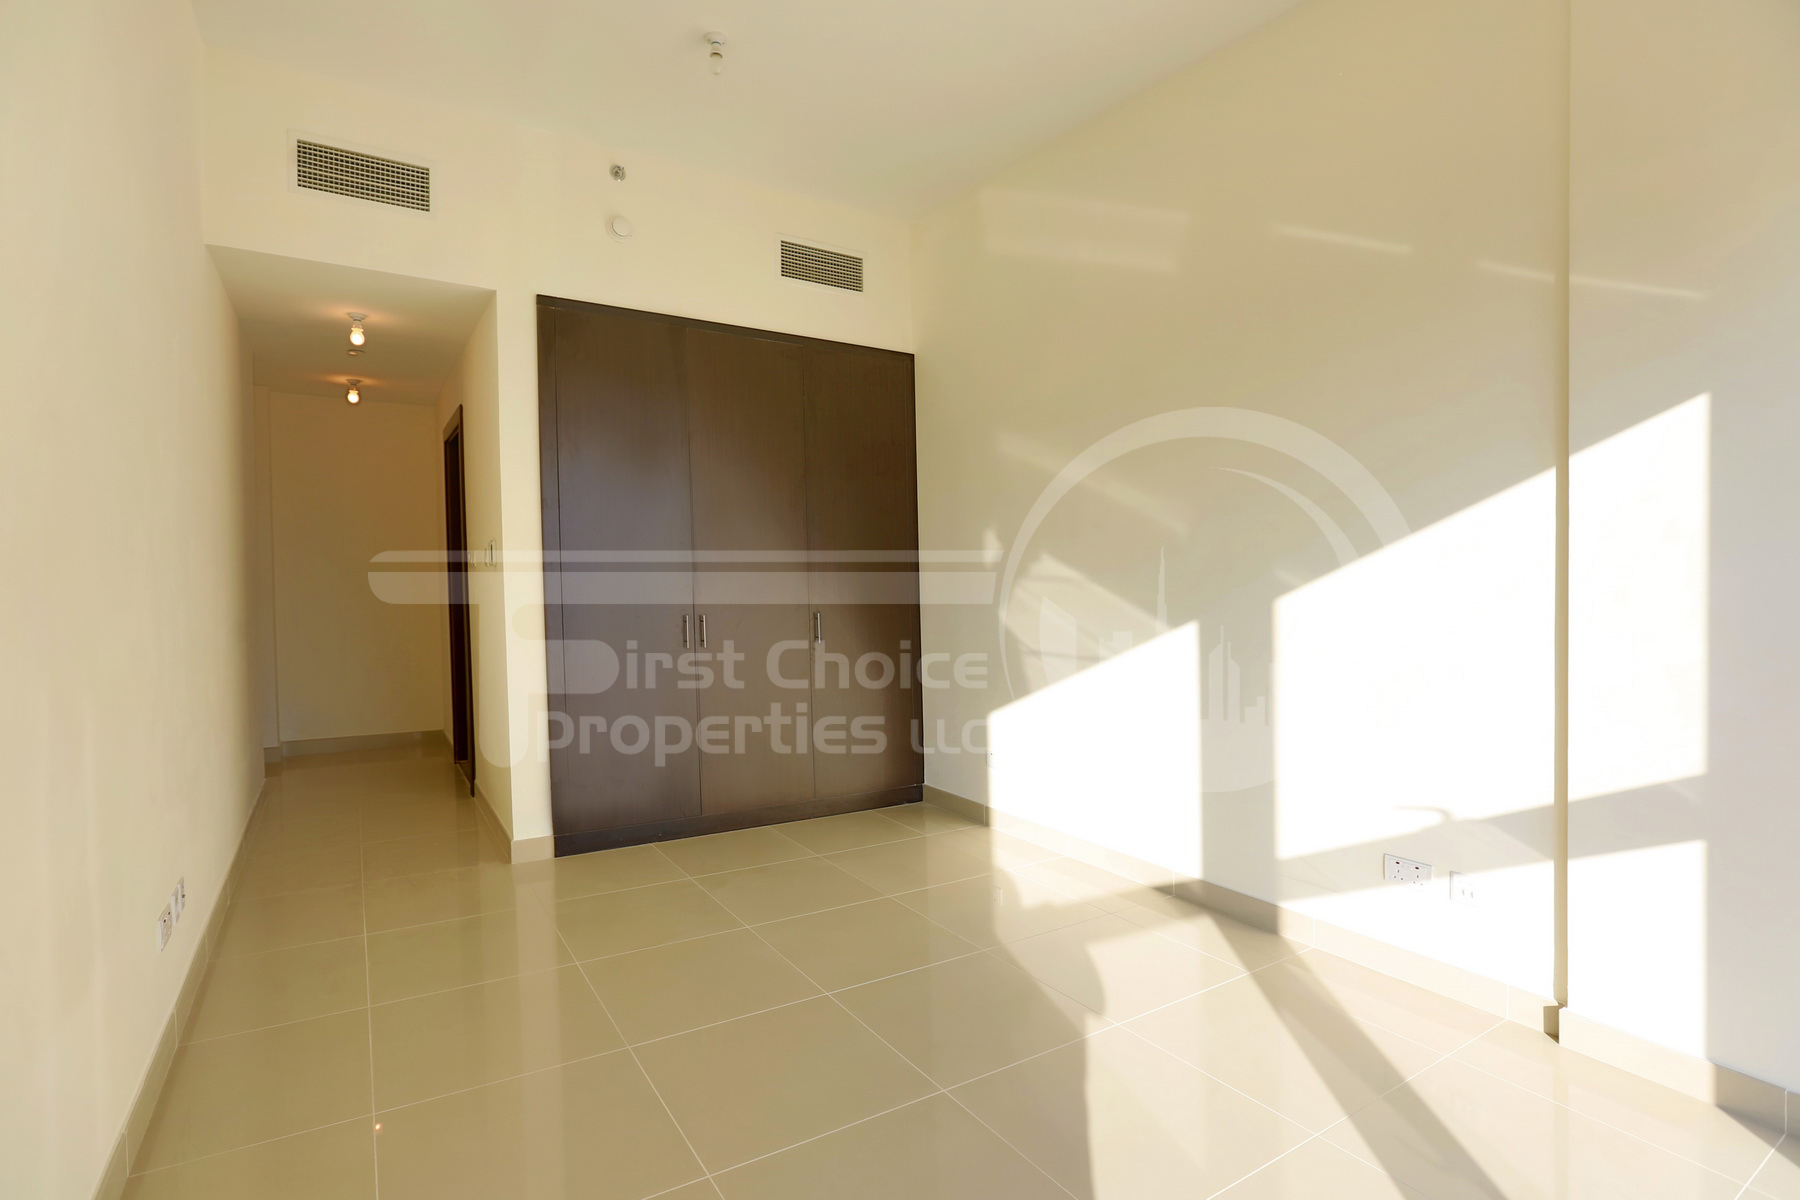 3BR Apartment - Abu Dhabi - UAE - Al Reem Island - City of Lights - C10 Building (53).JPG